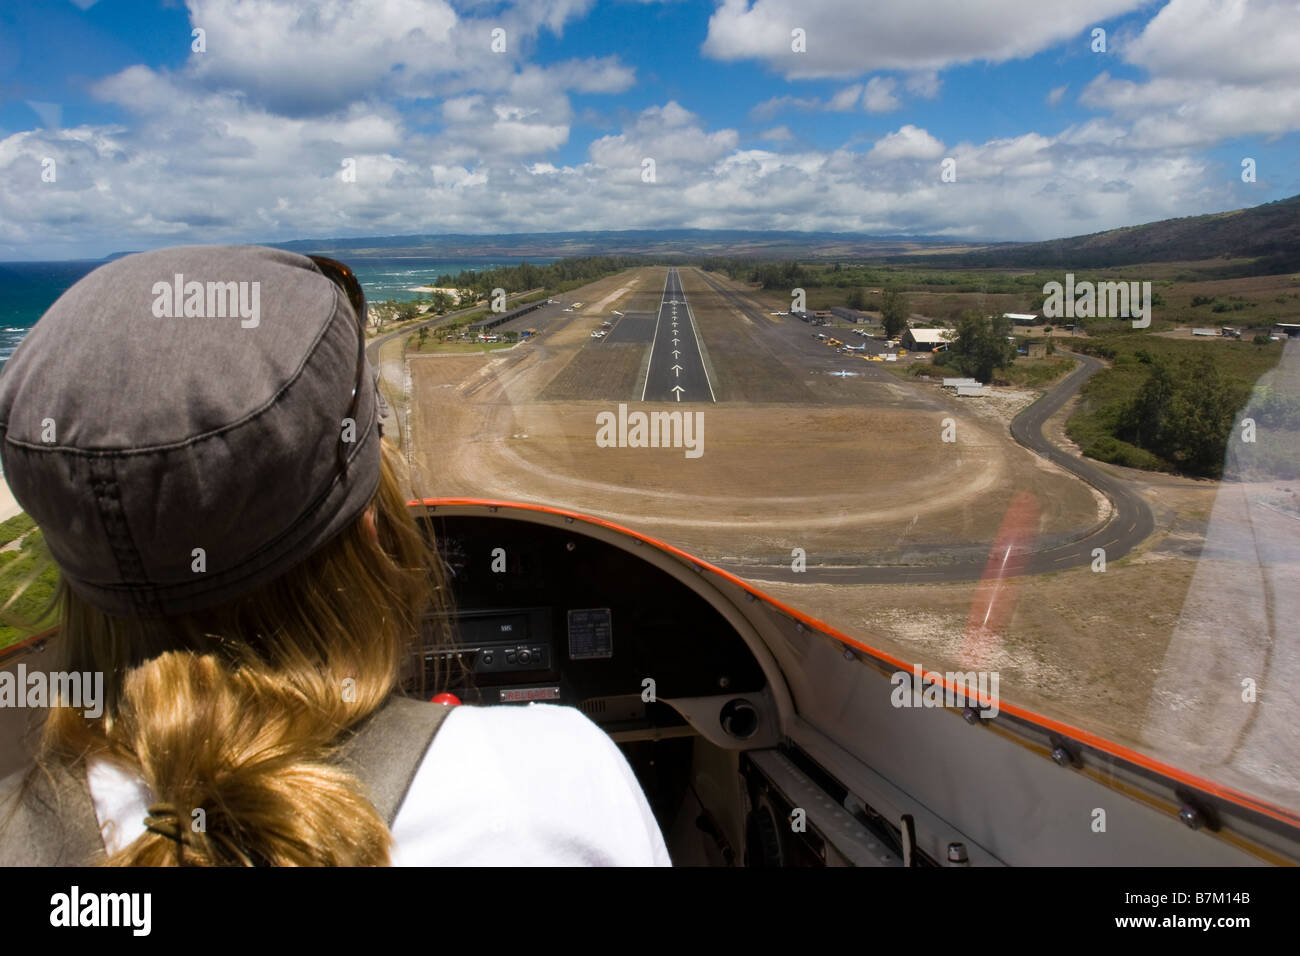 Female pilot in glider airplane approaching runway for arrival at Dillingham Airfield in Oahu Hawaii - Stock Image